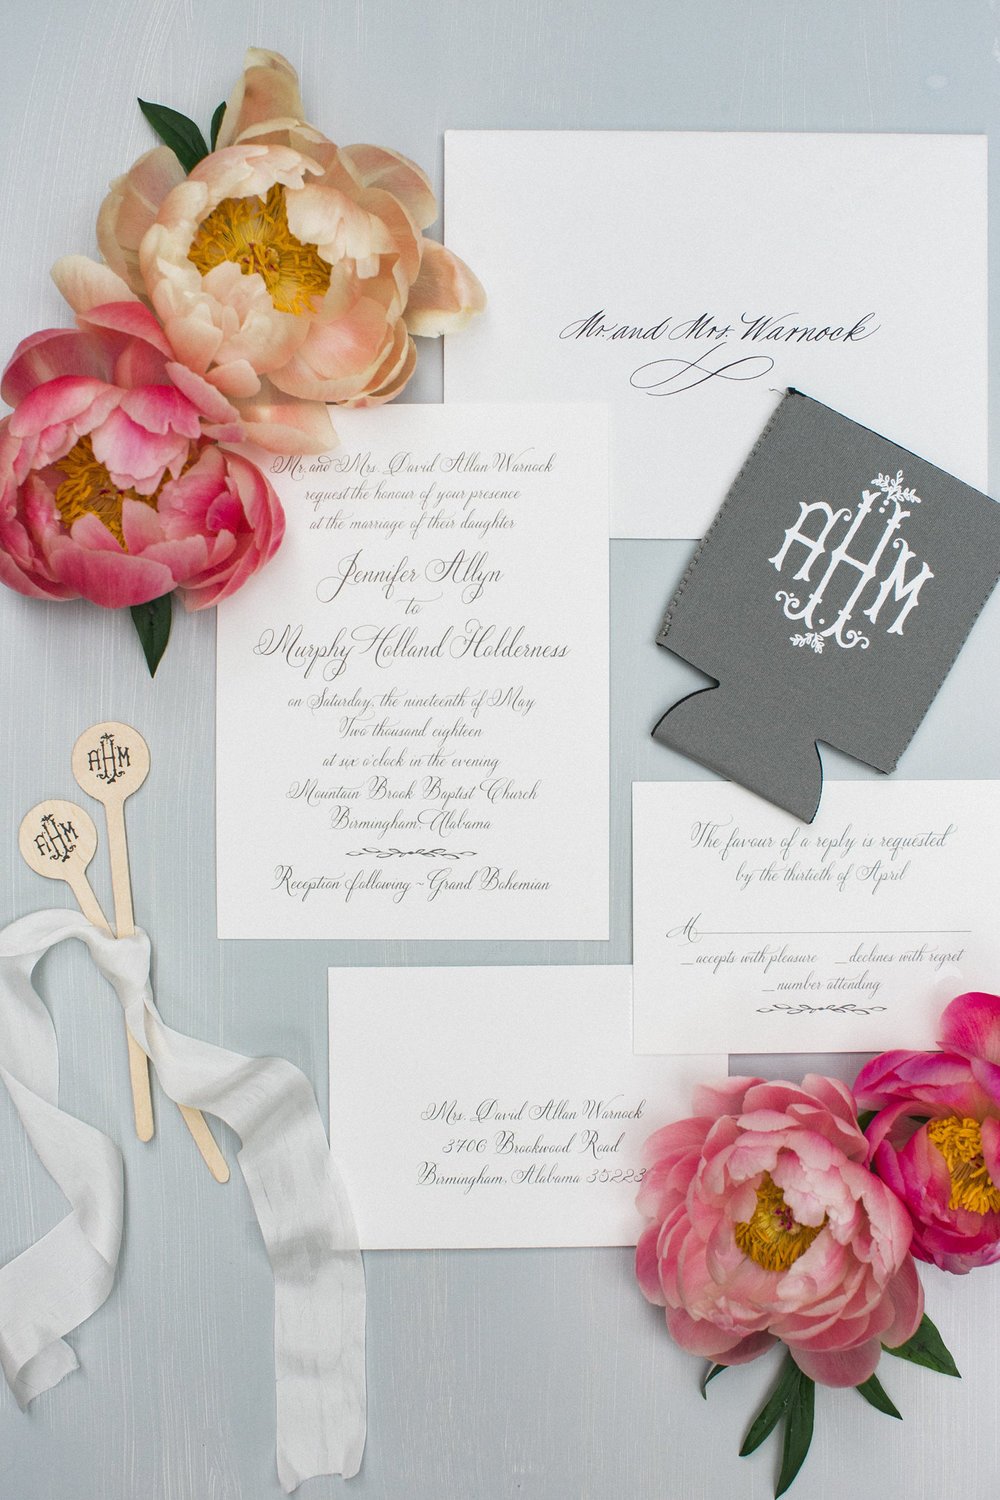 Handley Breaux Designs | Paper Suites